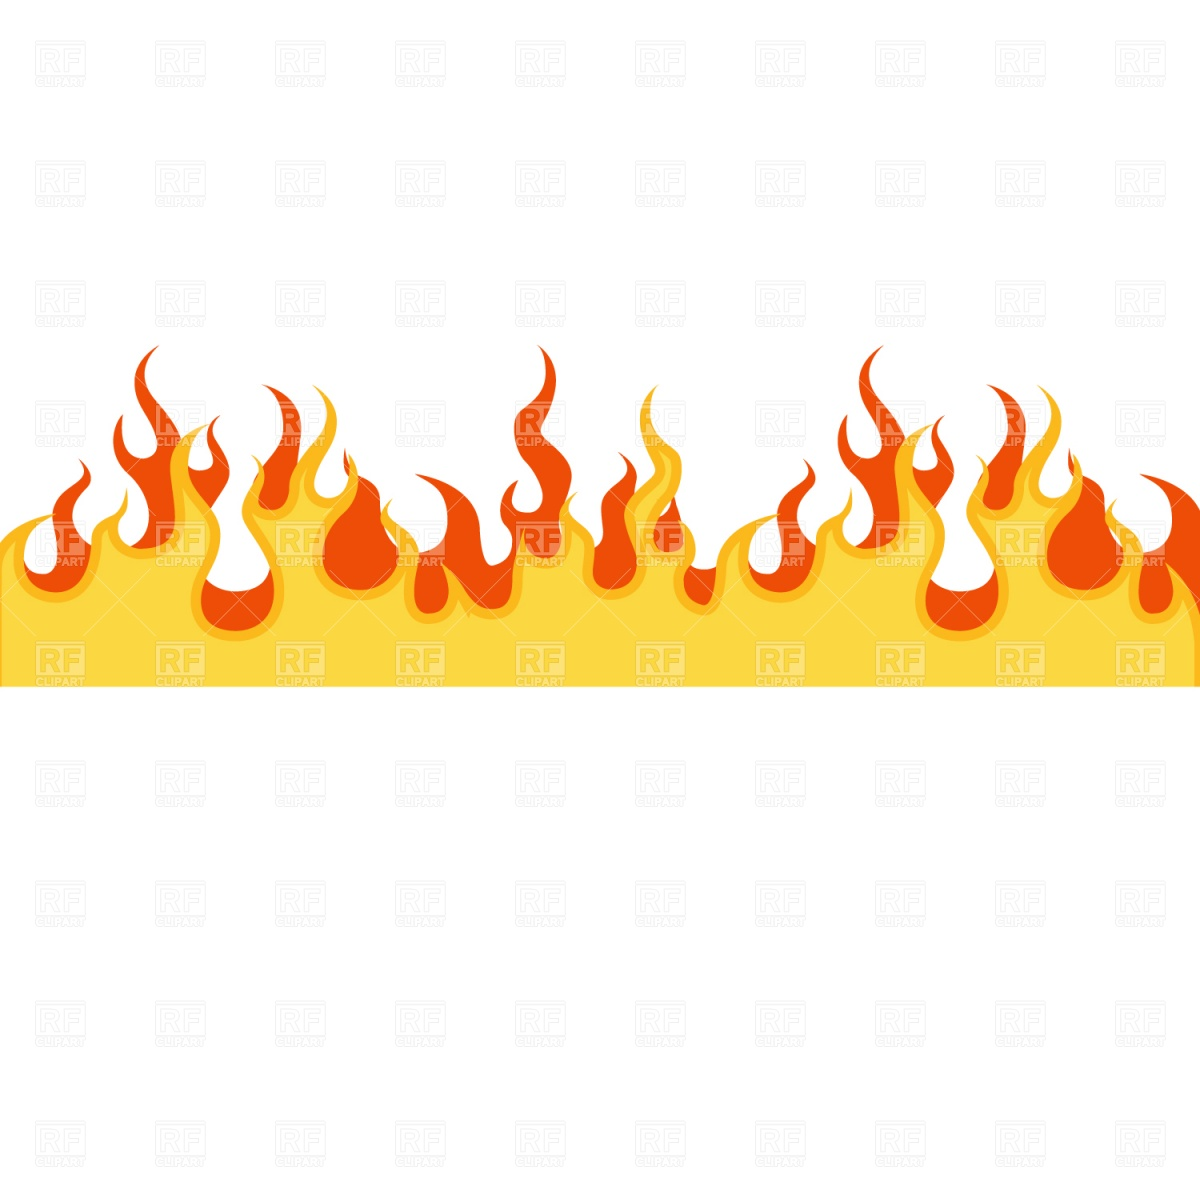 Flames clipart #8, Download drawings